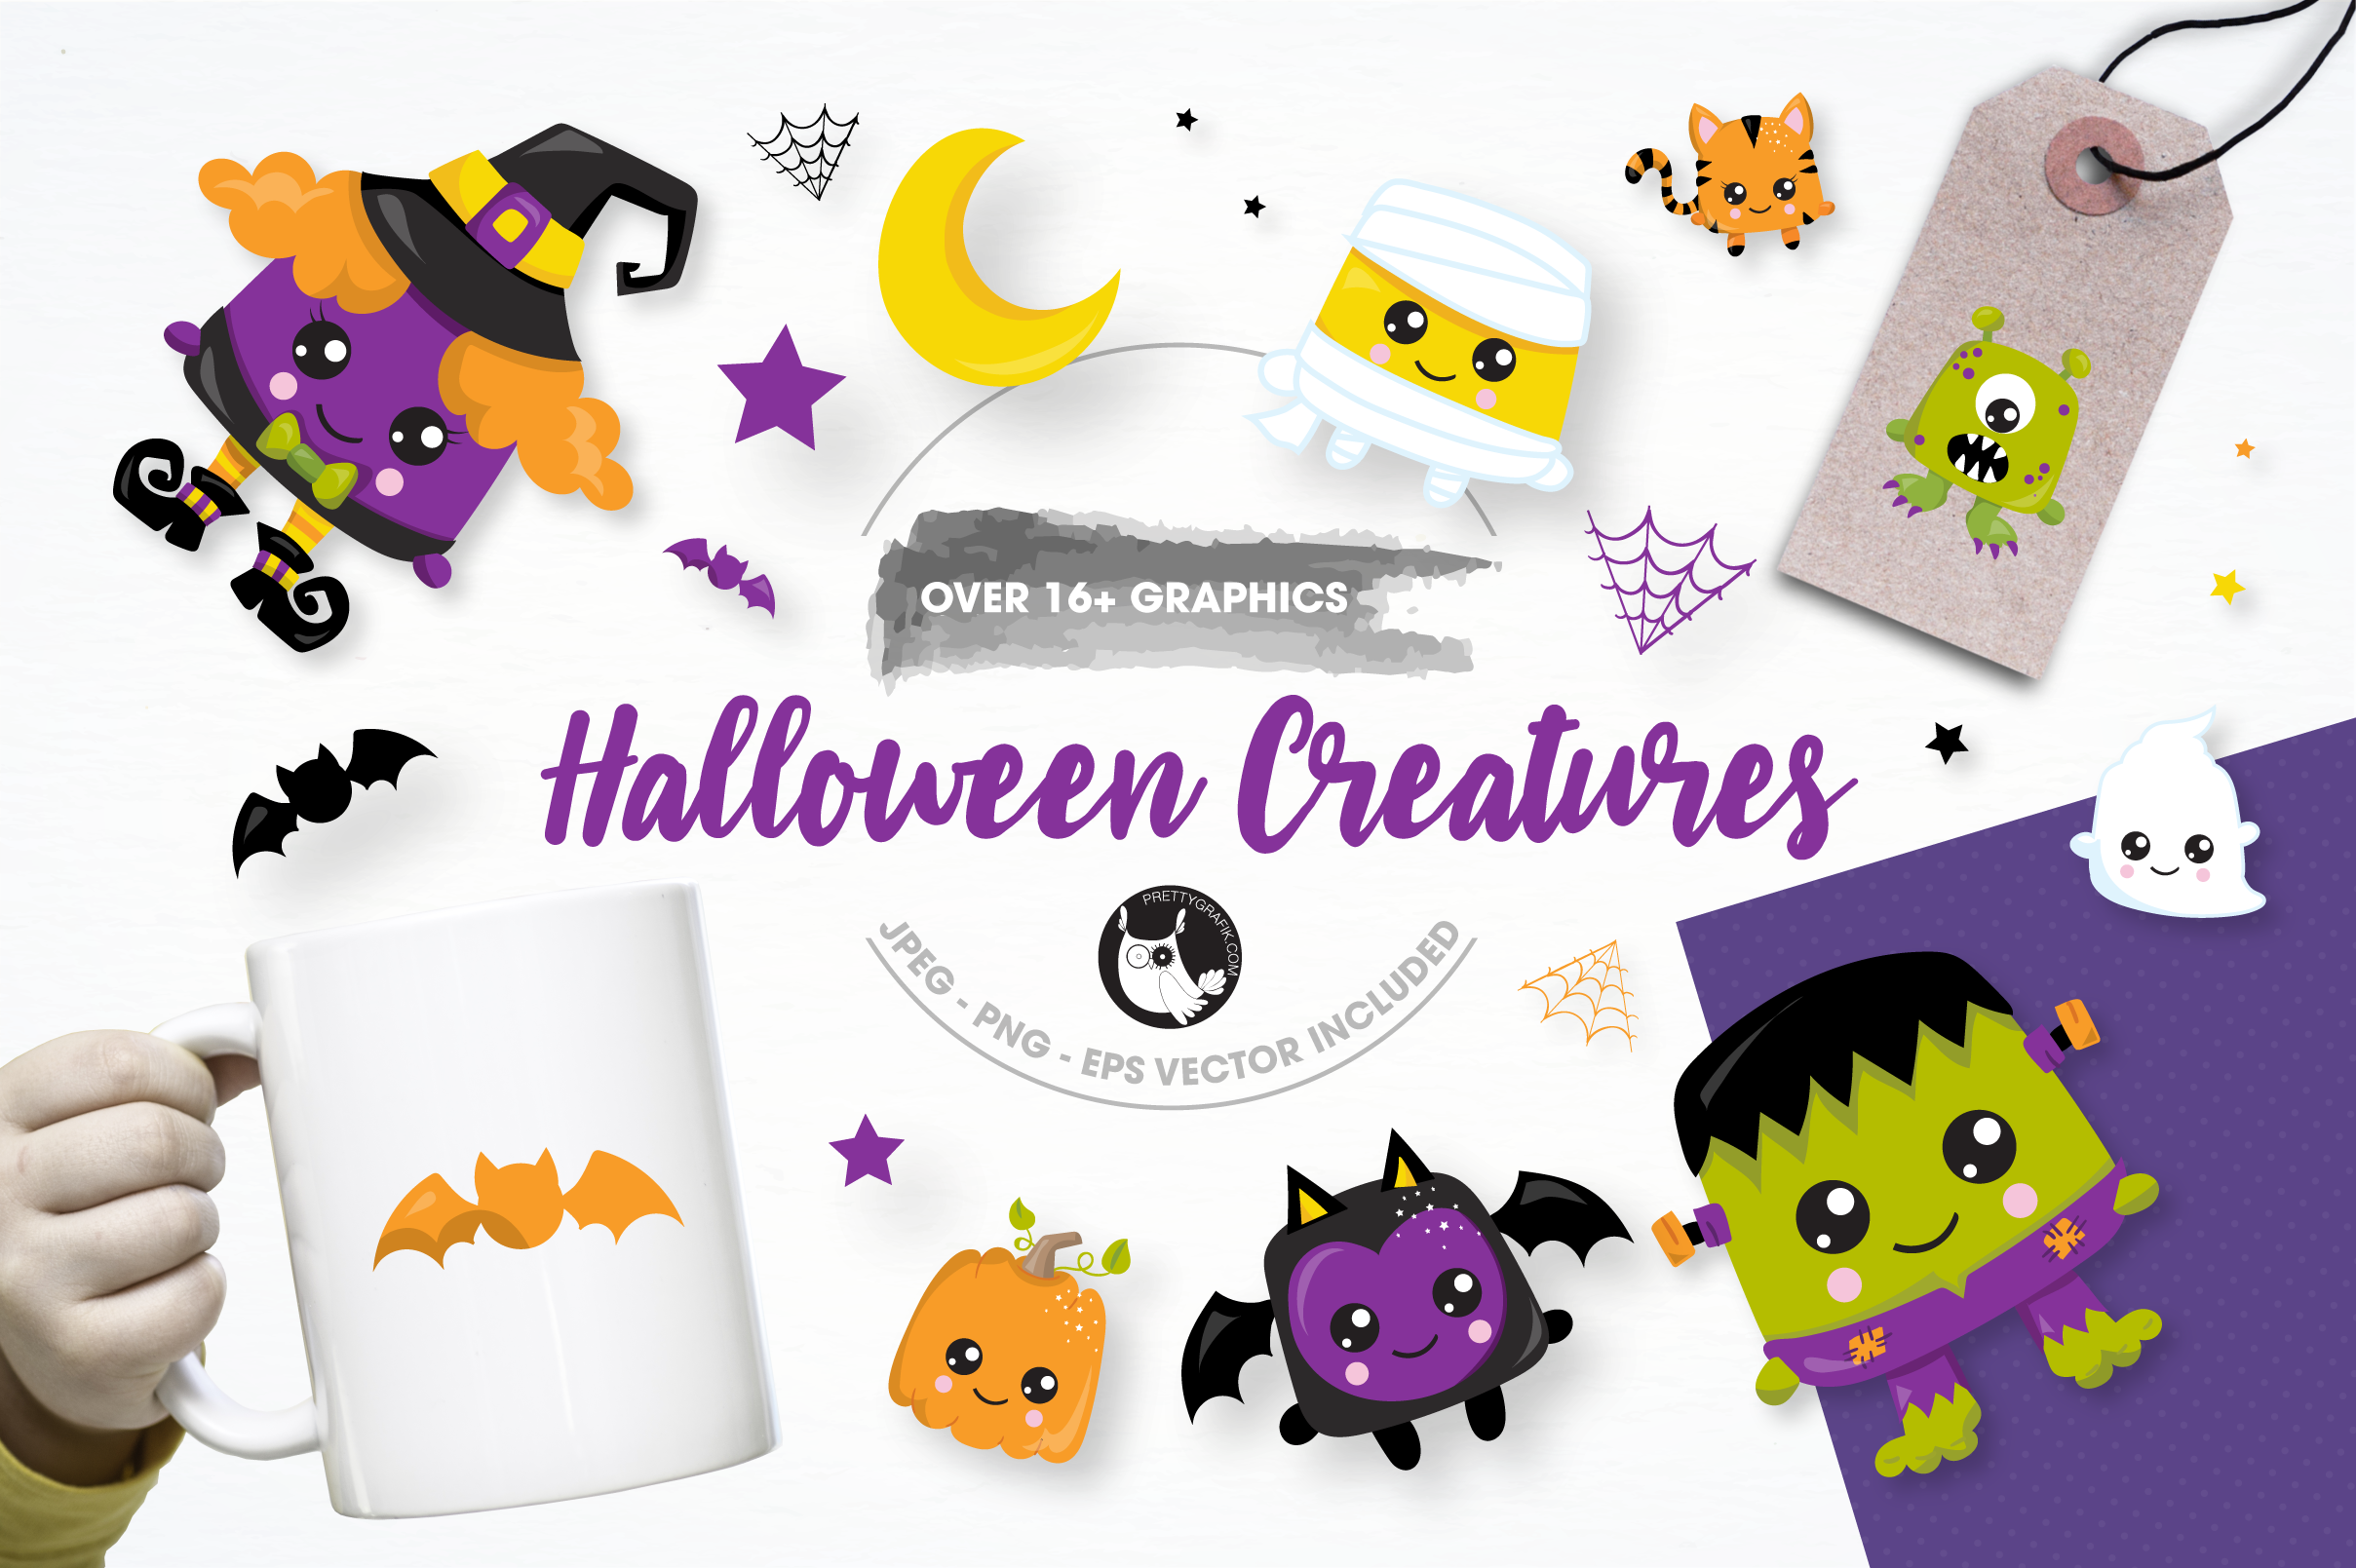 halloween creatures graphics and illustrations example image 1